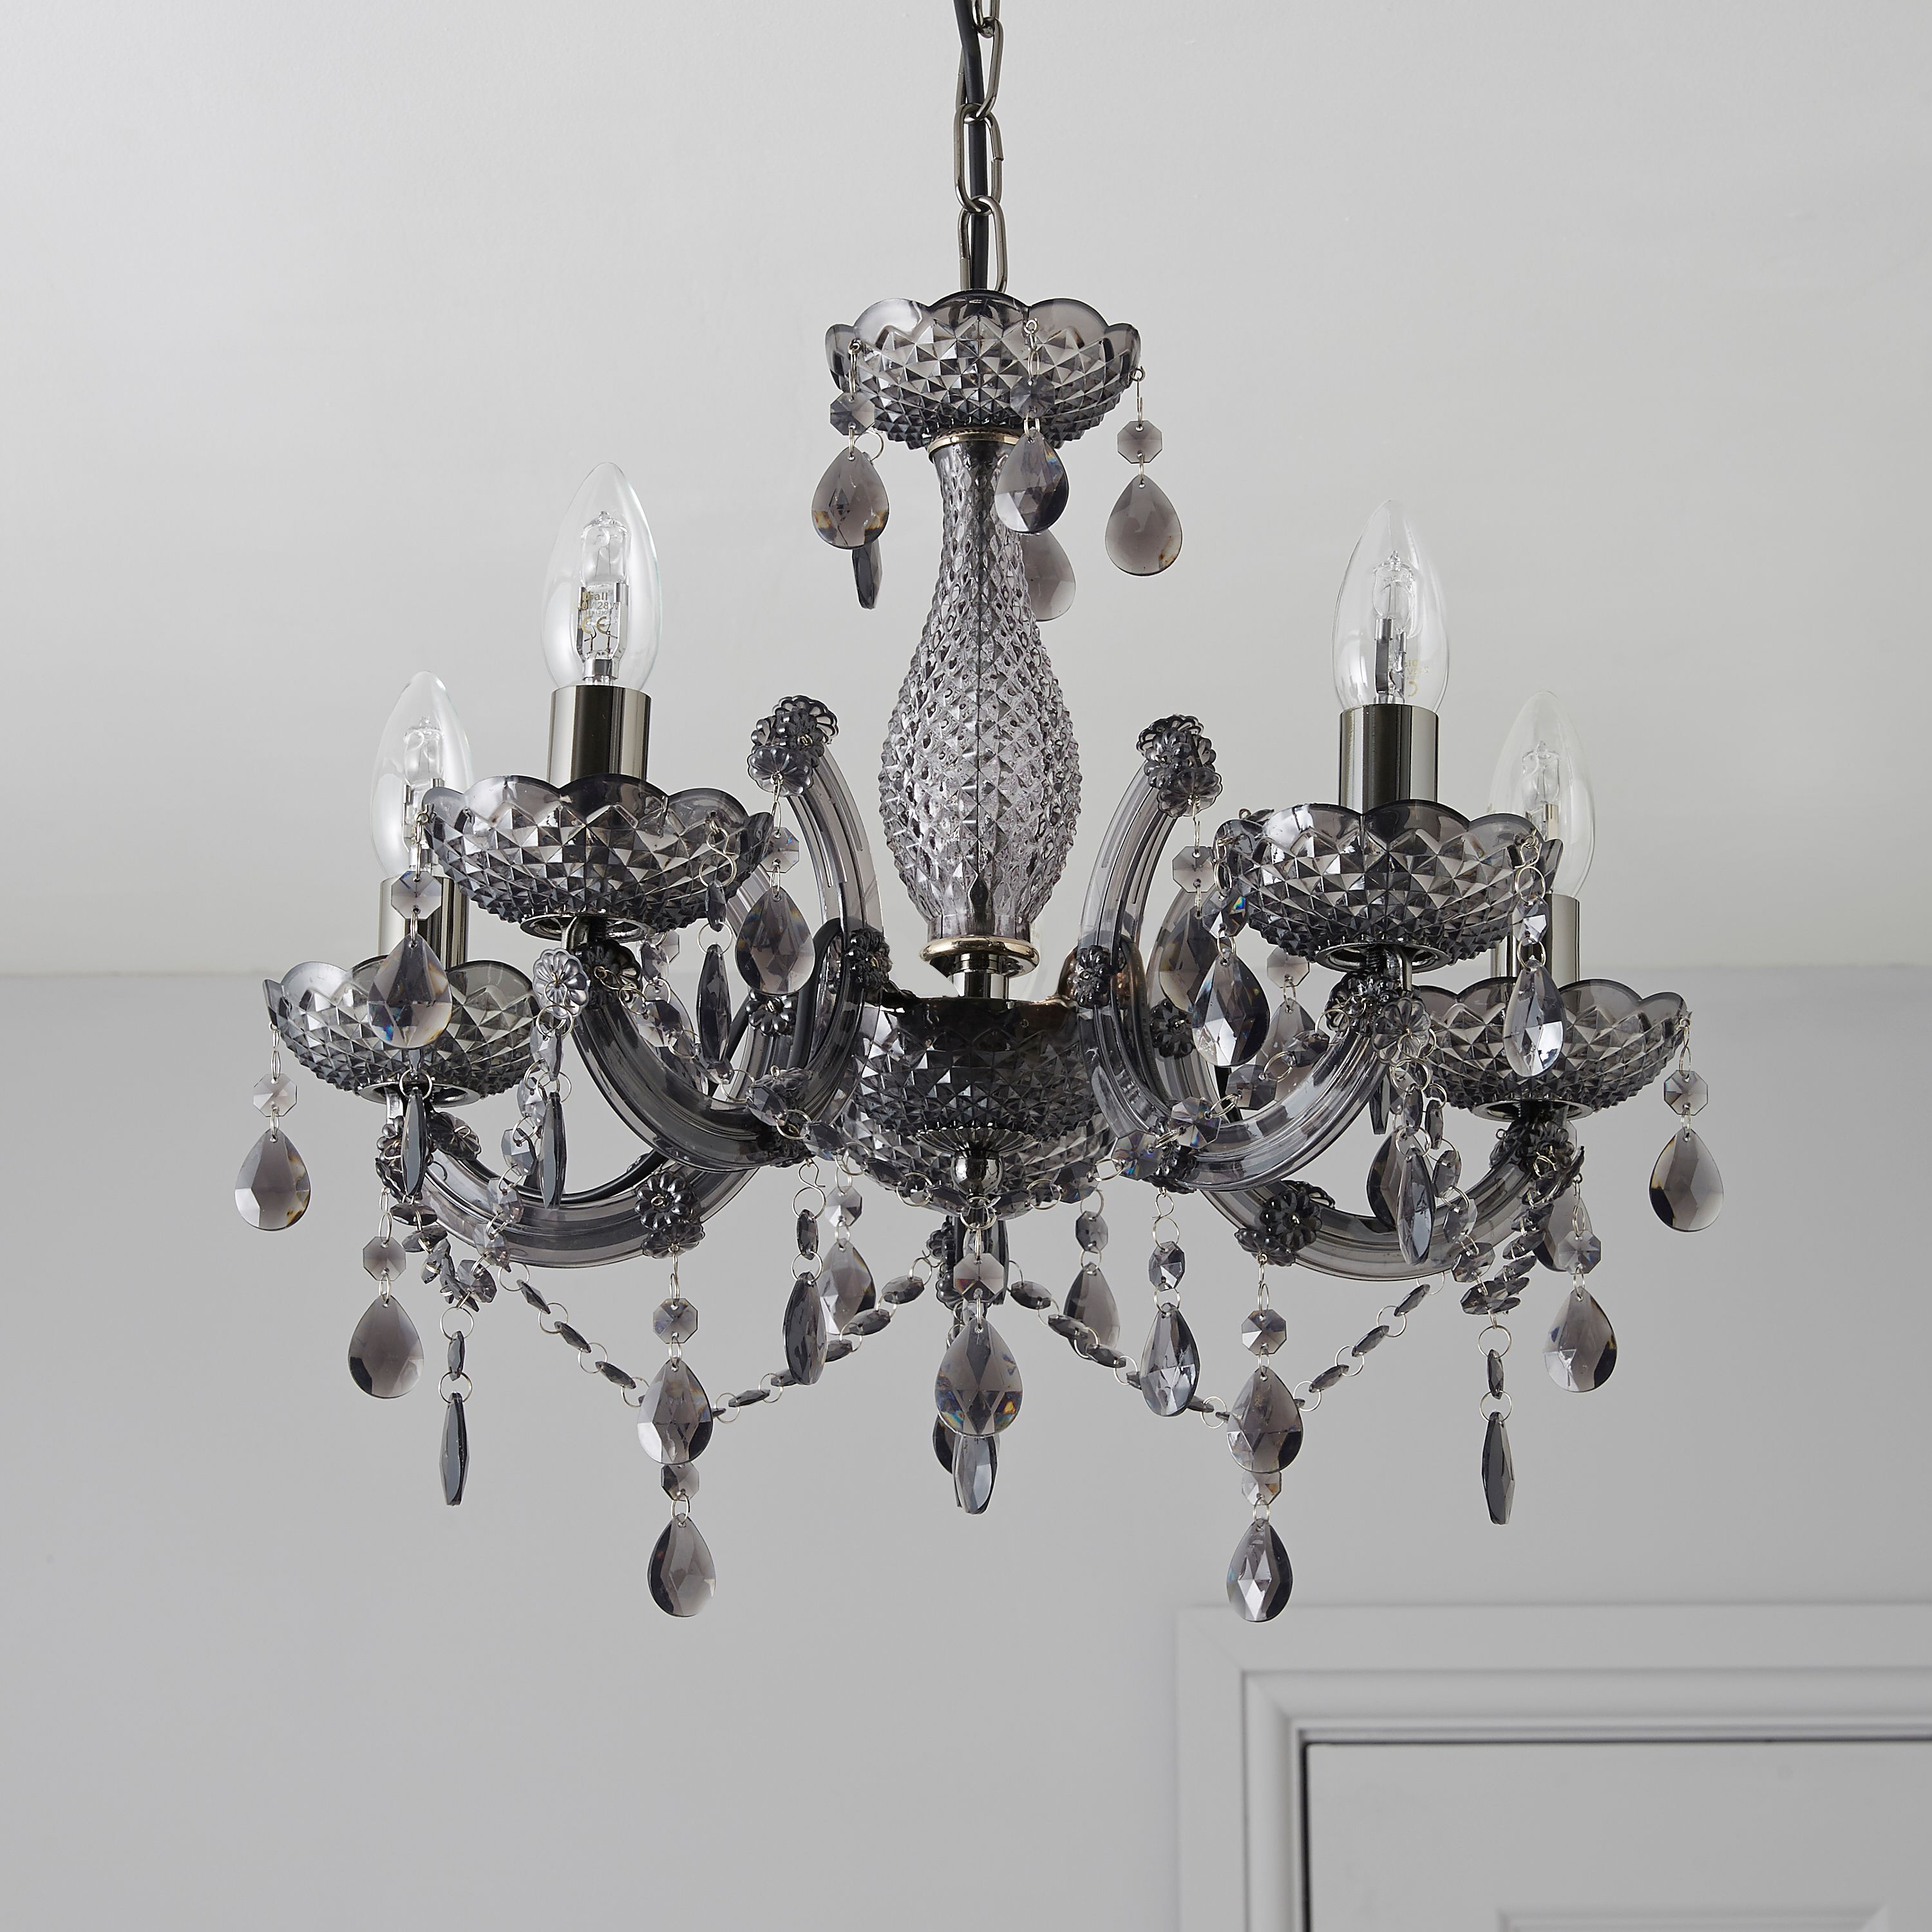 Bedroom Lights B Q: Annelise Crystal Droplets Smoked 5 Lamp Chandelier